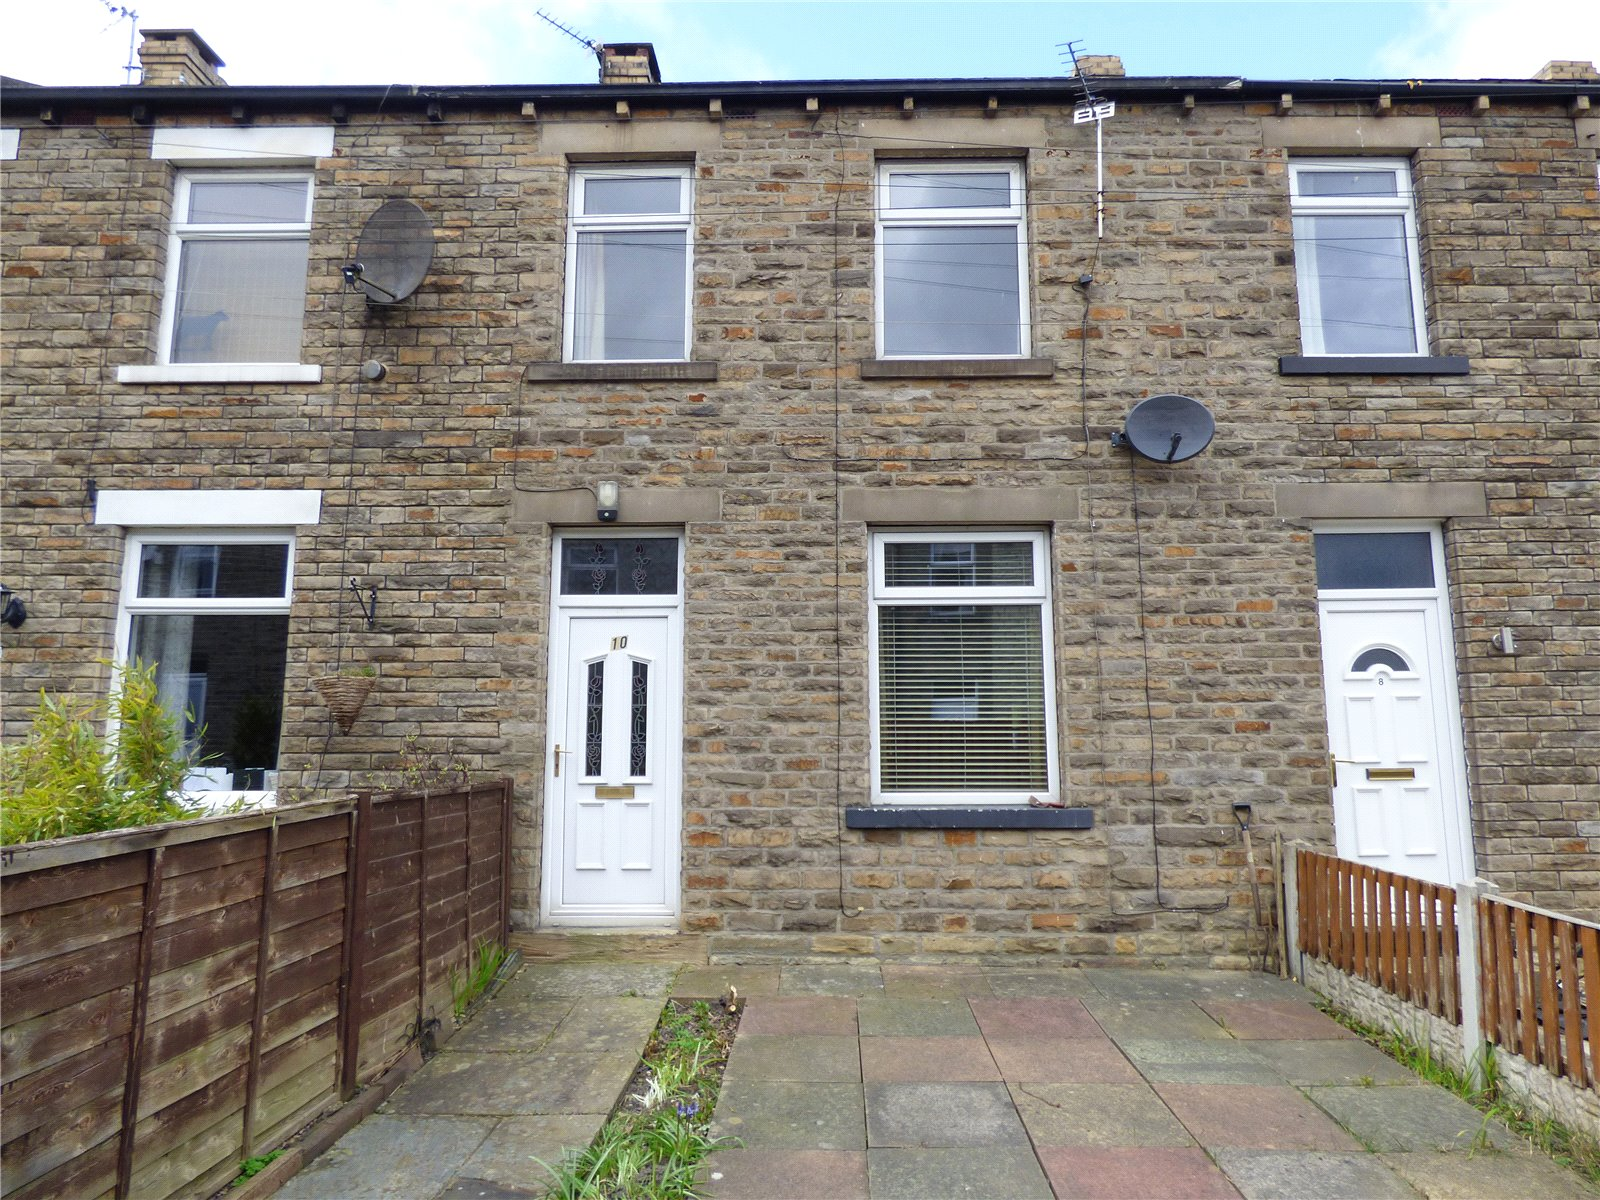 Yorkshire Terrace: Whitegates Cleckheaton 2 Bedroom House SSTC In Mayfield